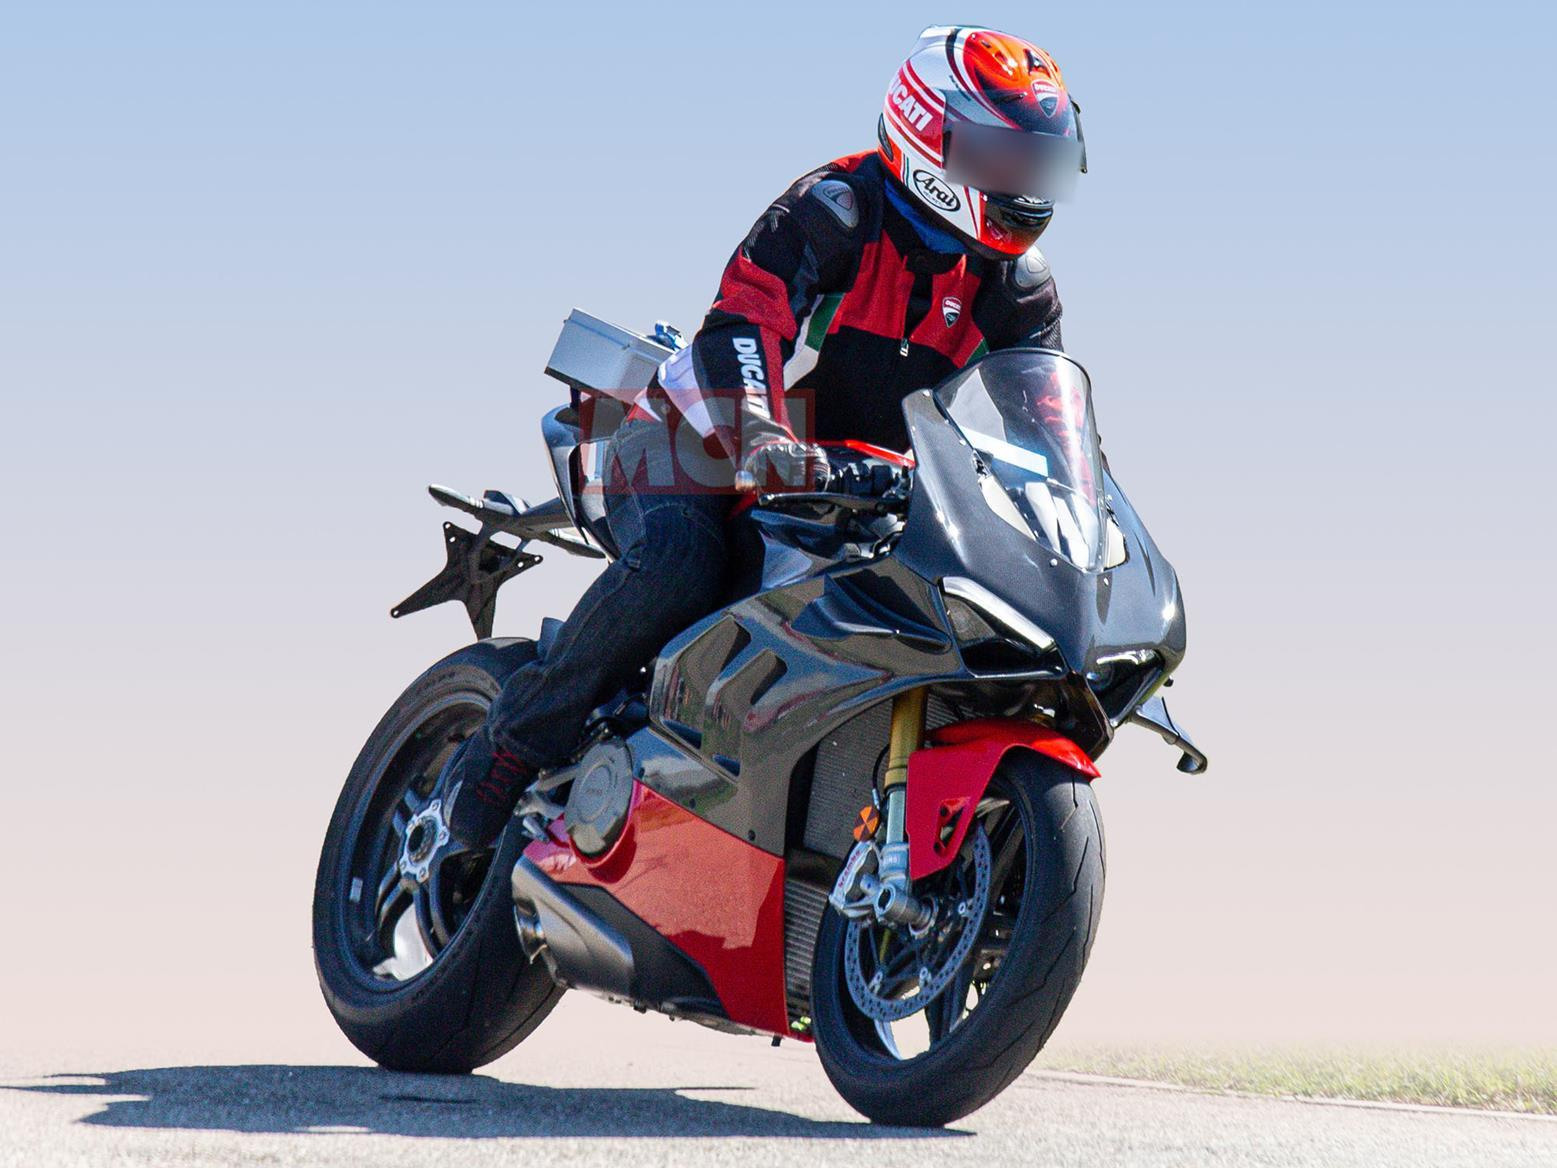 Check out the aero fins on this new special-edition Ducati Panigale V4 Superleggera